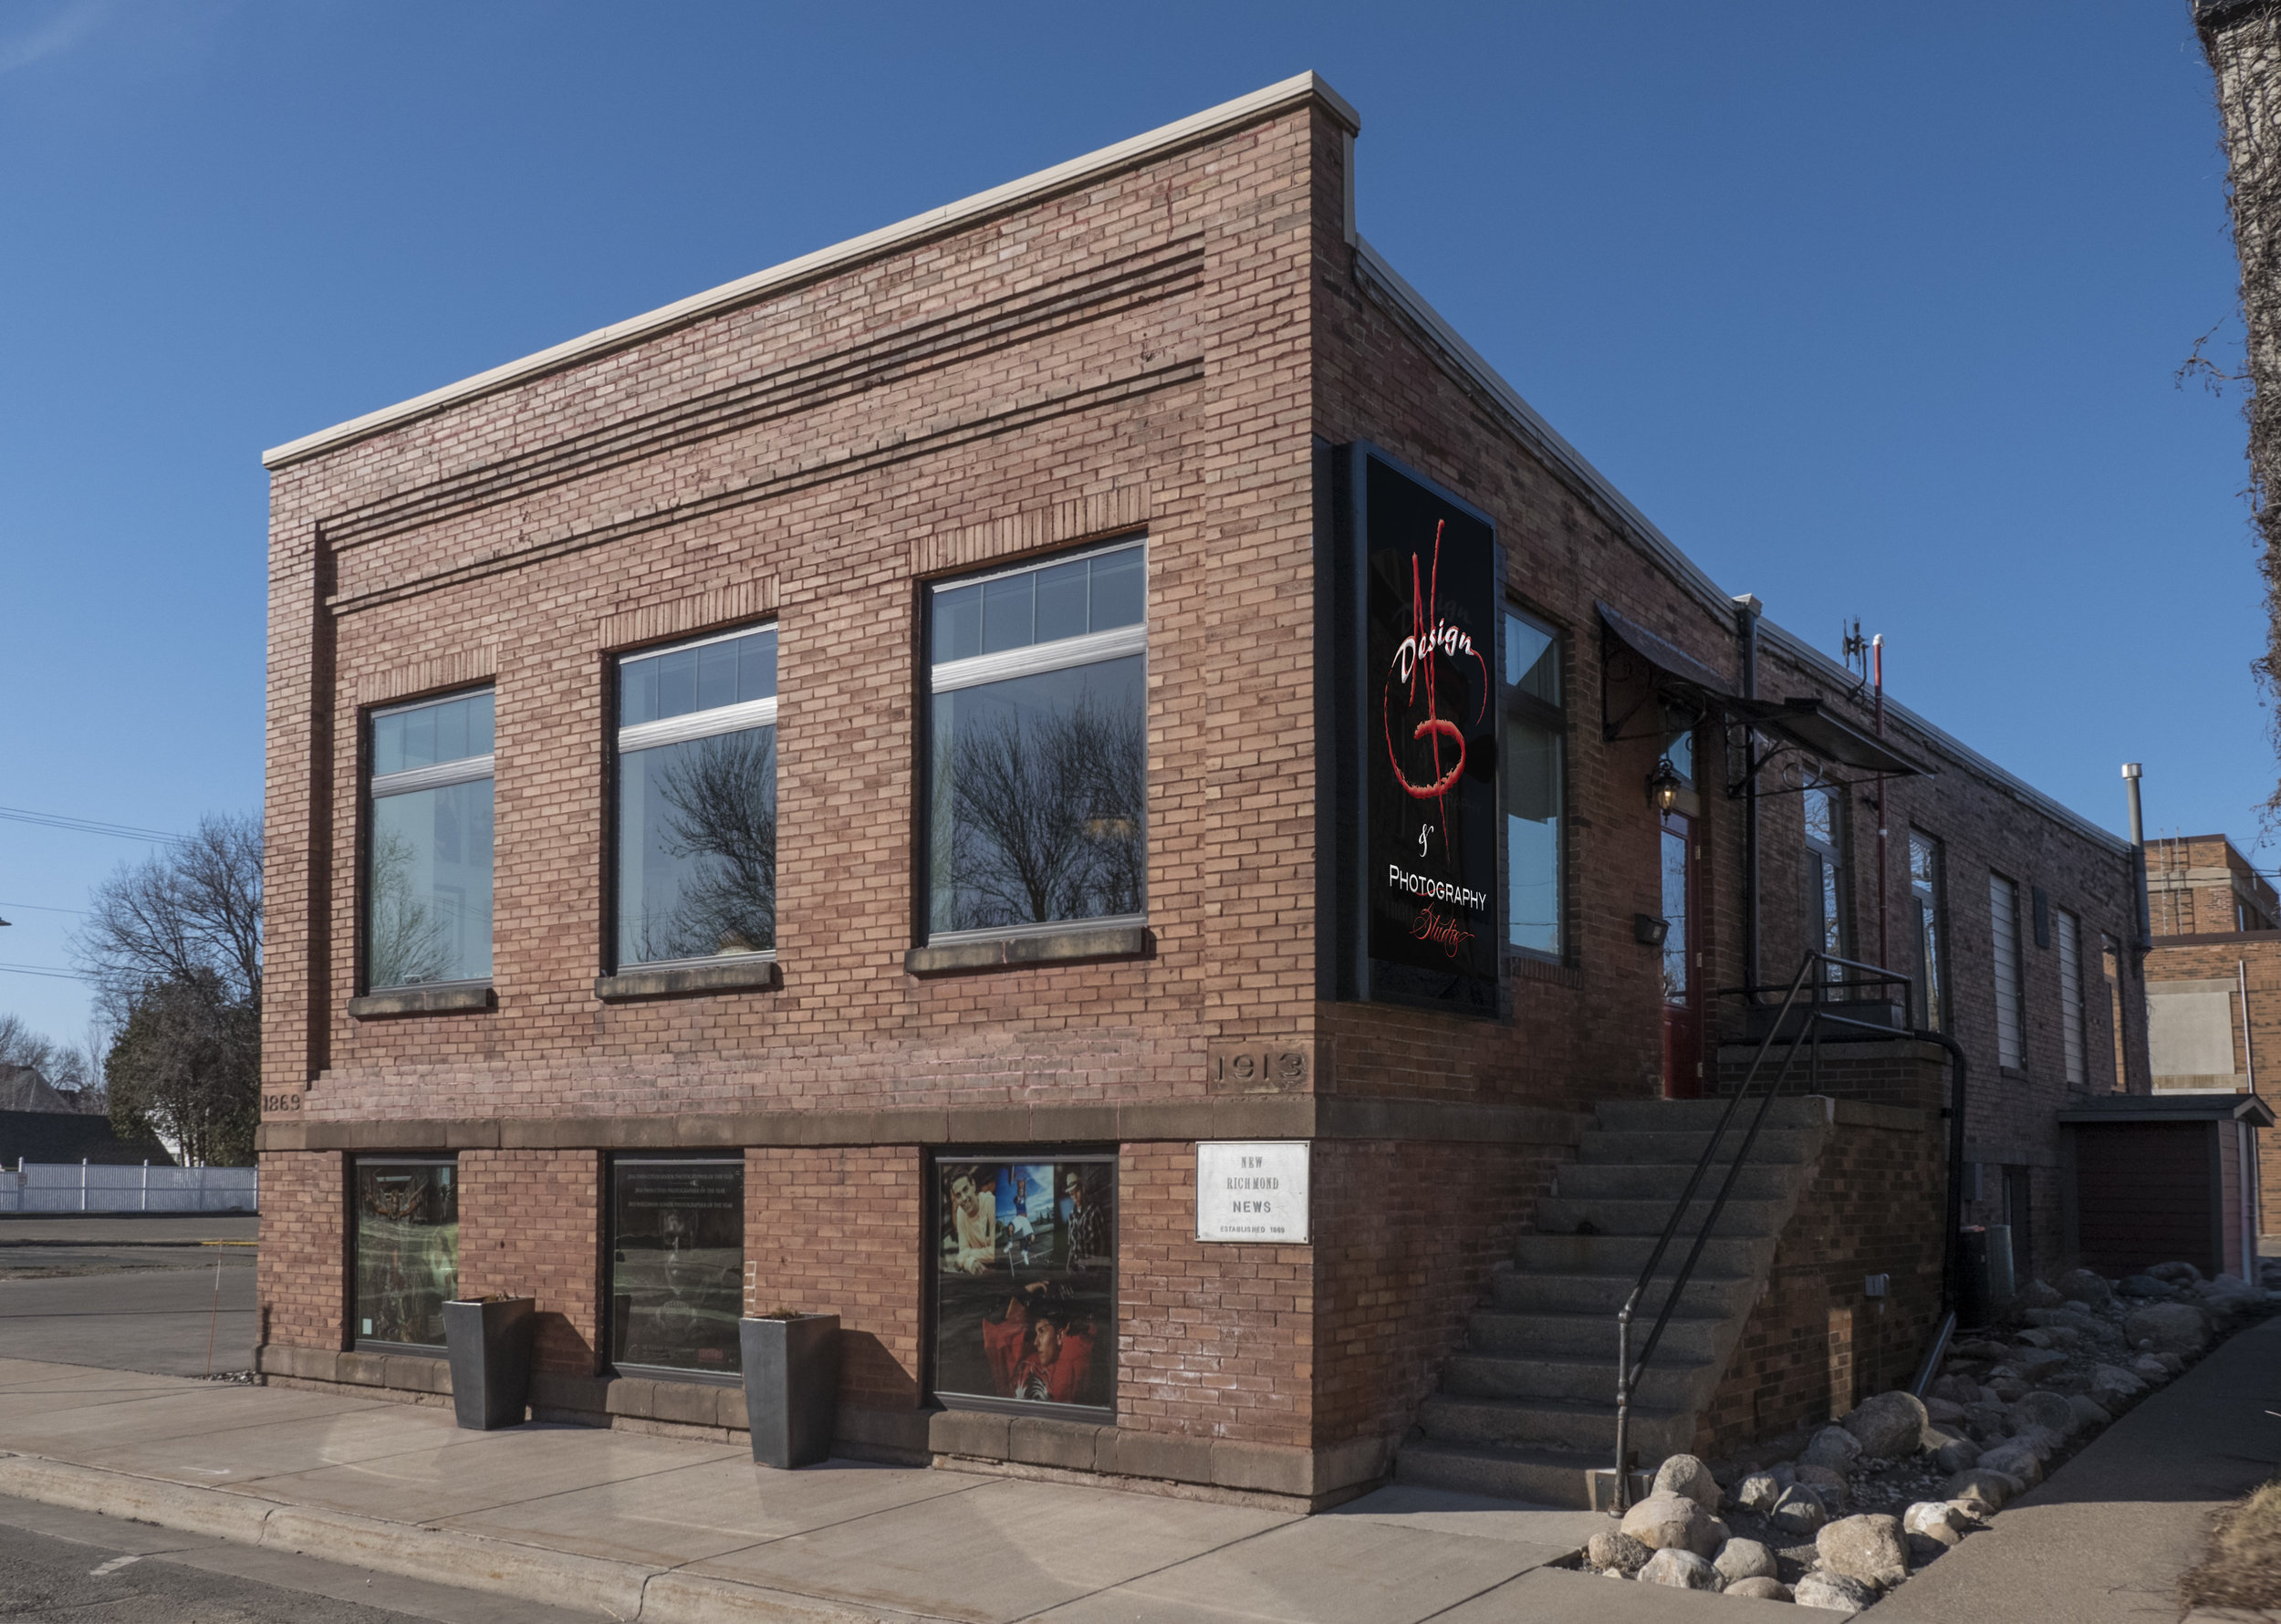 Our 100-Year-Old building located in the heart of New Richmond, WI.